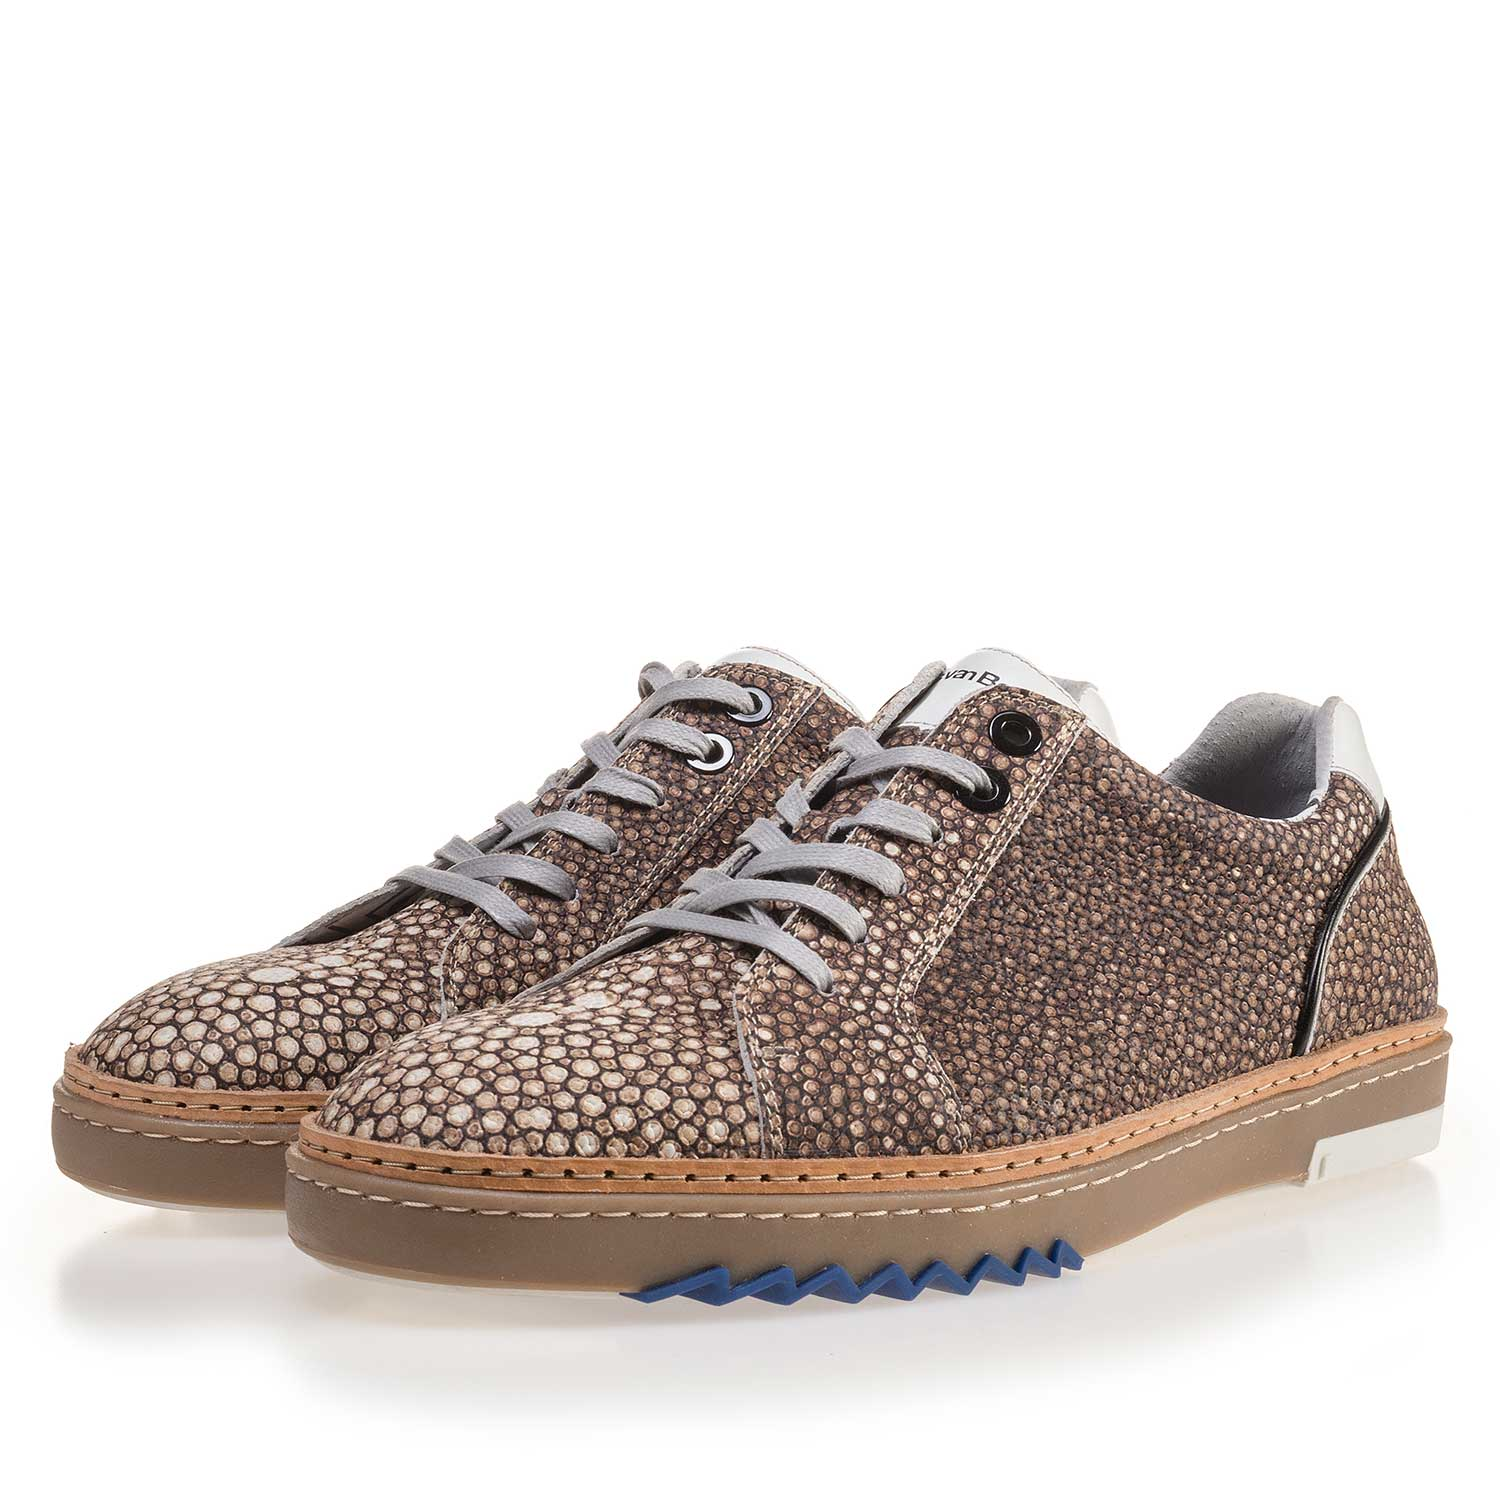 14057/03 - Brown, patterned leather sneaker